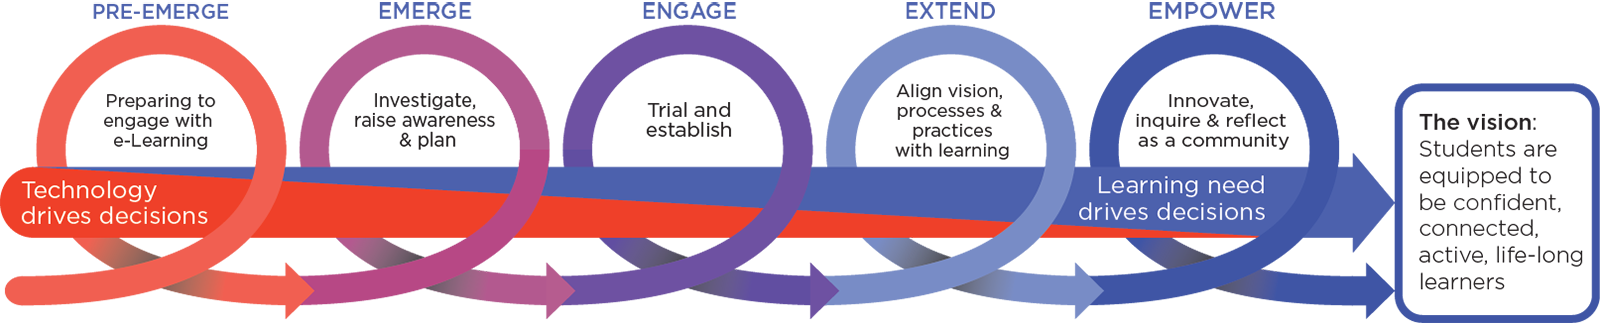 Diagram showing 5 stages of development of using technologies for e-learning: Pre-emerge – Technology drives decisions, Emerge, Engage, Extend, Empower – Learning need drives decisions. The vision: Students are equipped to be confident, connected, active, lifelong learners